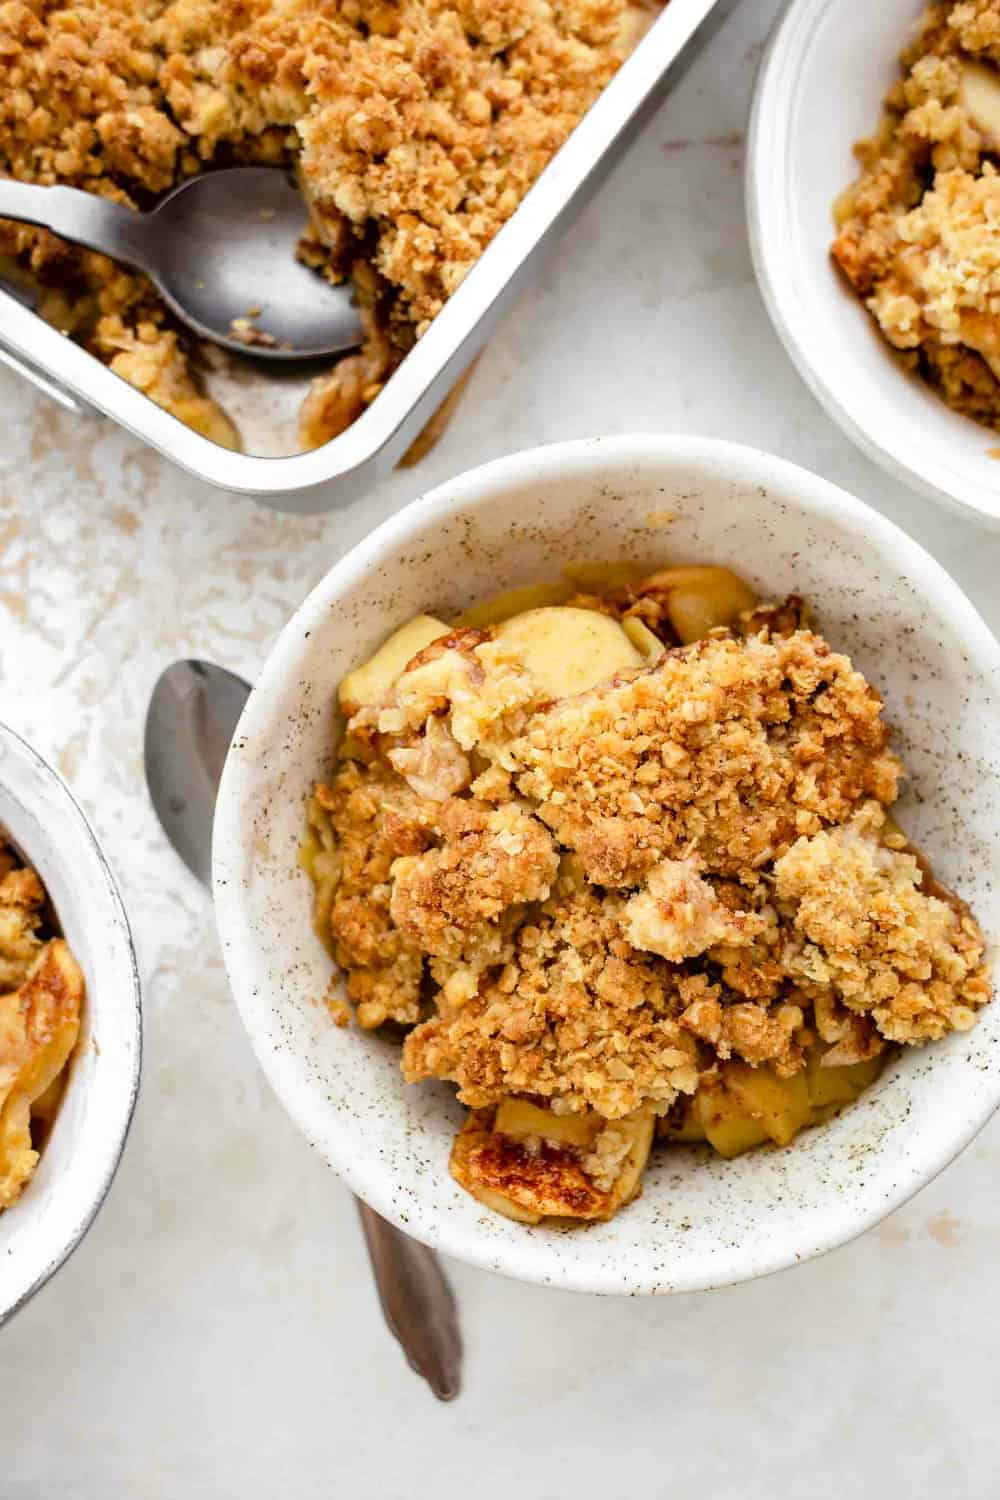 Pan of old fashioned apple crisp surrounded by small bowls of crisp